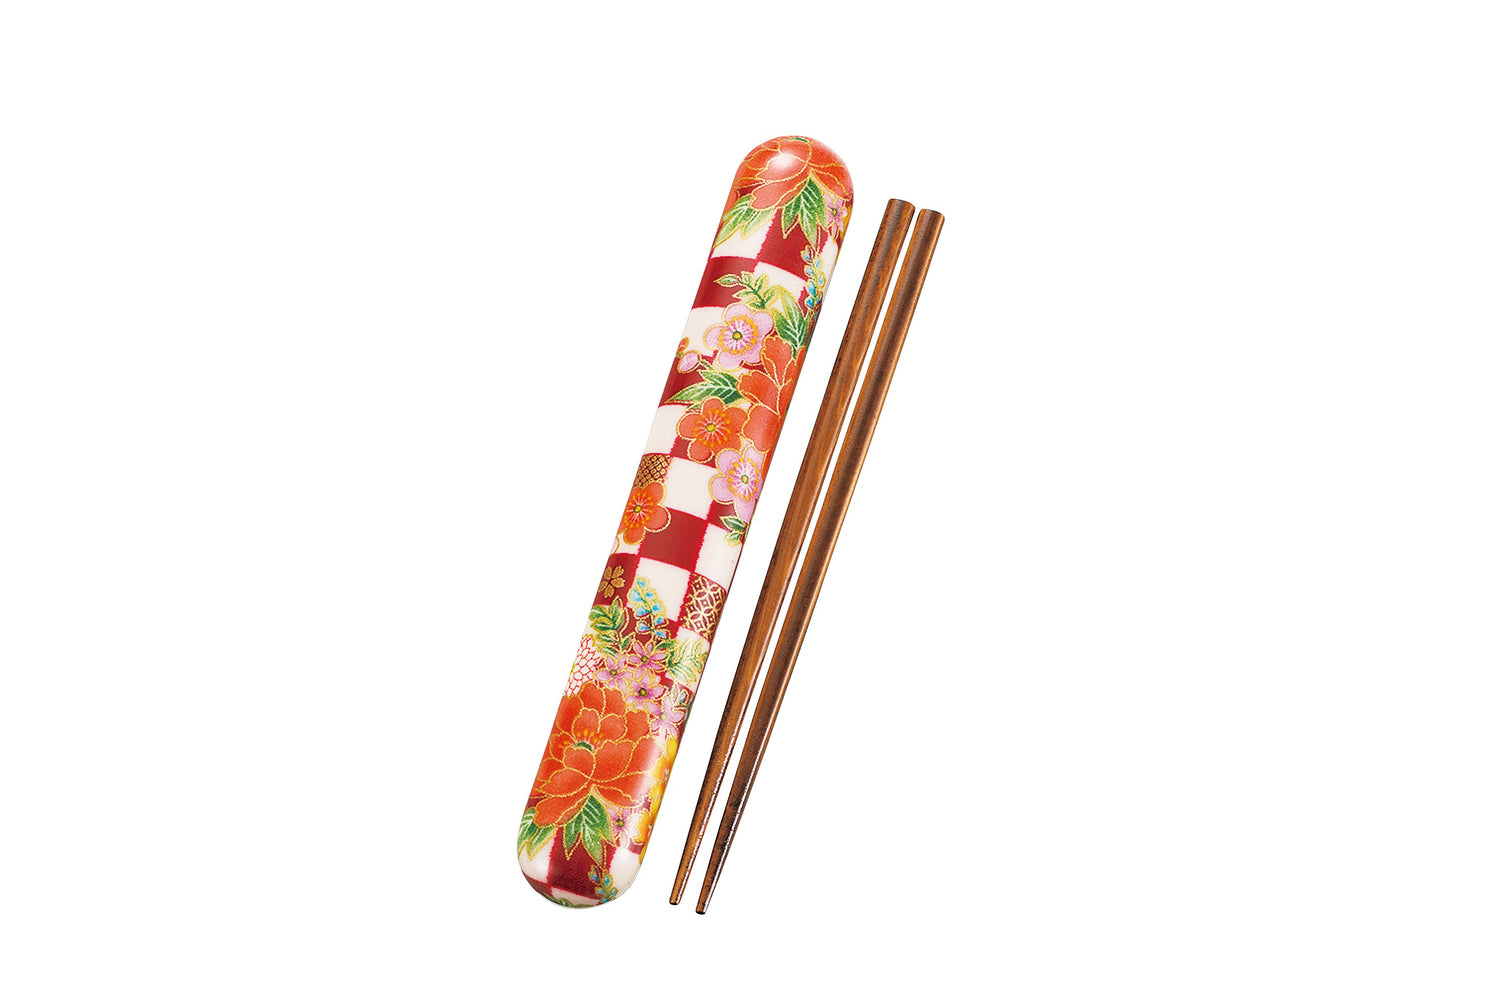 Ichimatsu flower Chopsticks Red by Hakoya - Bento&co Japanese Bento Lunch Boxes and Kitchenware Specialists